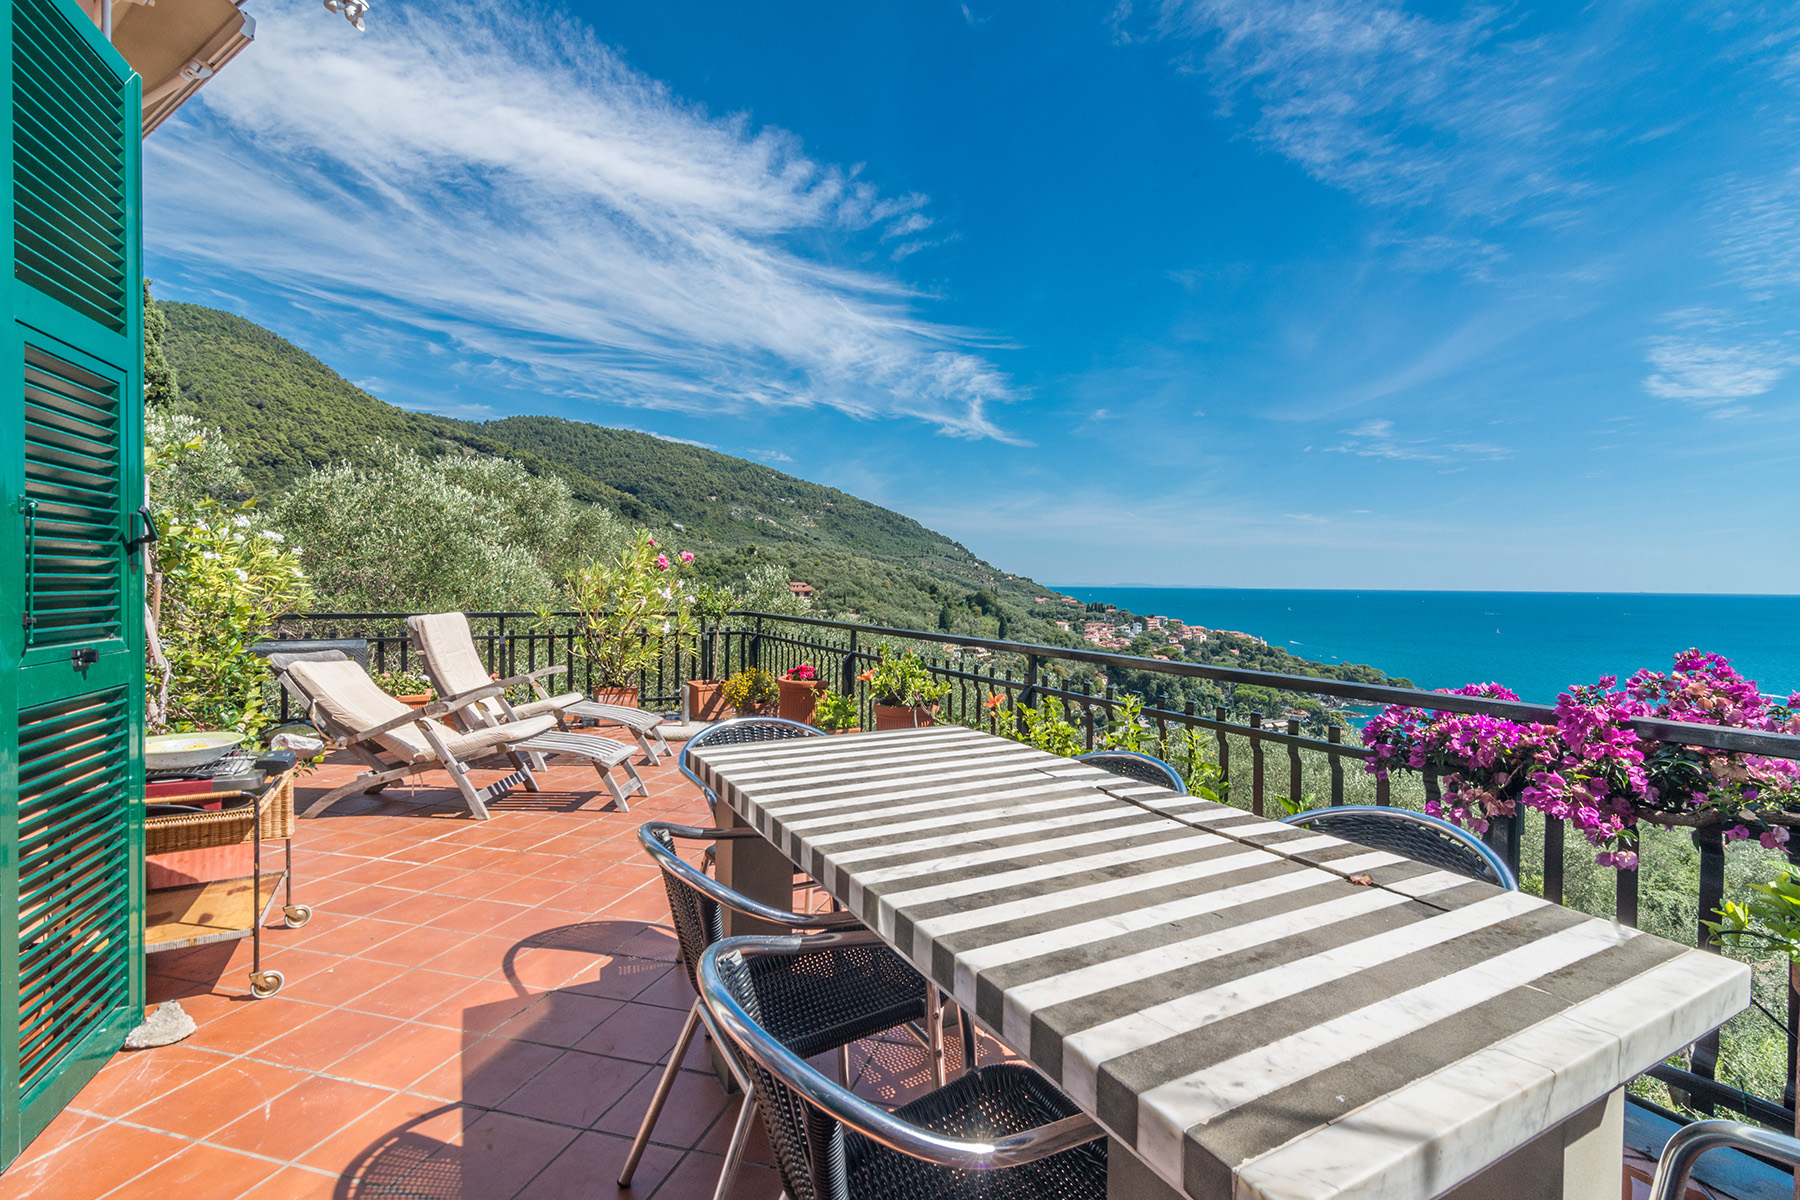 Additional photo for property listing at Exclusive penthouse with breath-taking view Località Fiascherino Fiascherino, La Spezia 19032 Italy